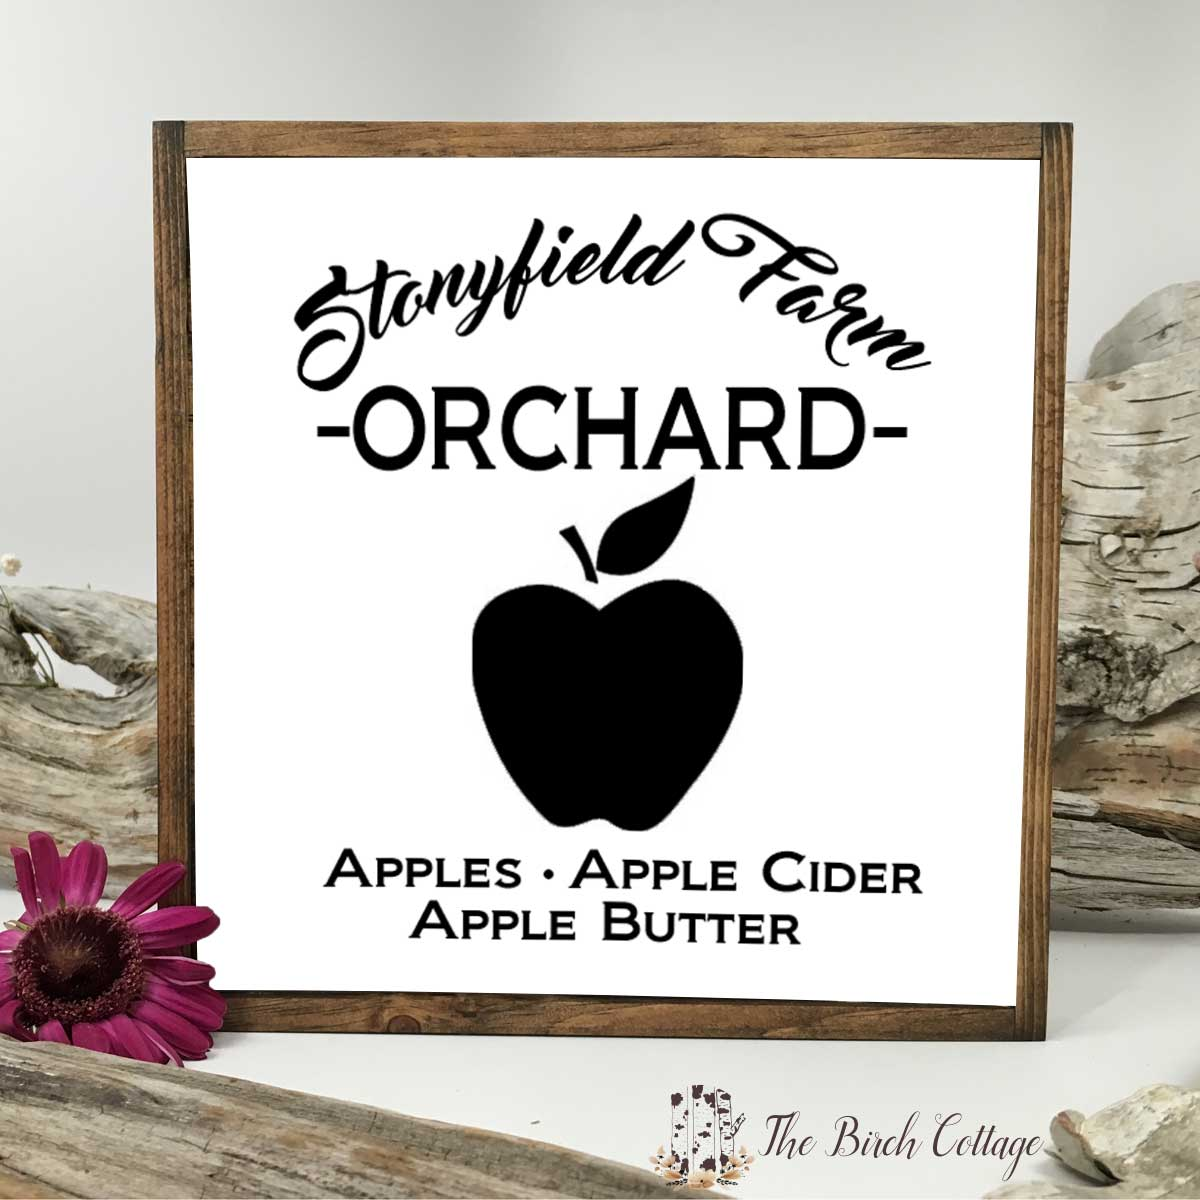 Stonyfield Farm Orchard, Bellefontaine, Ohio